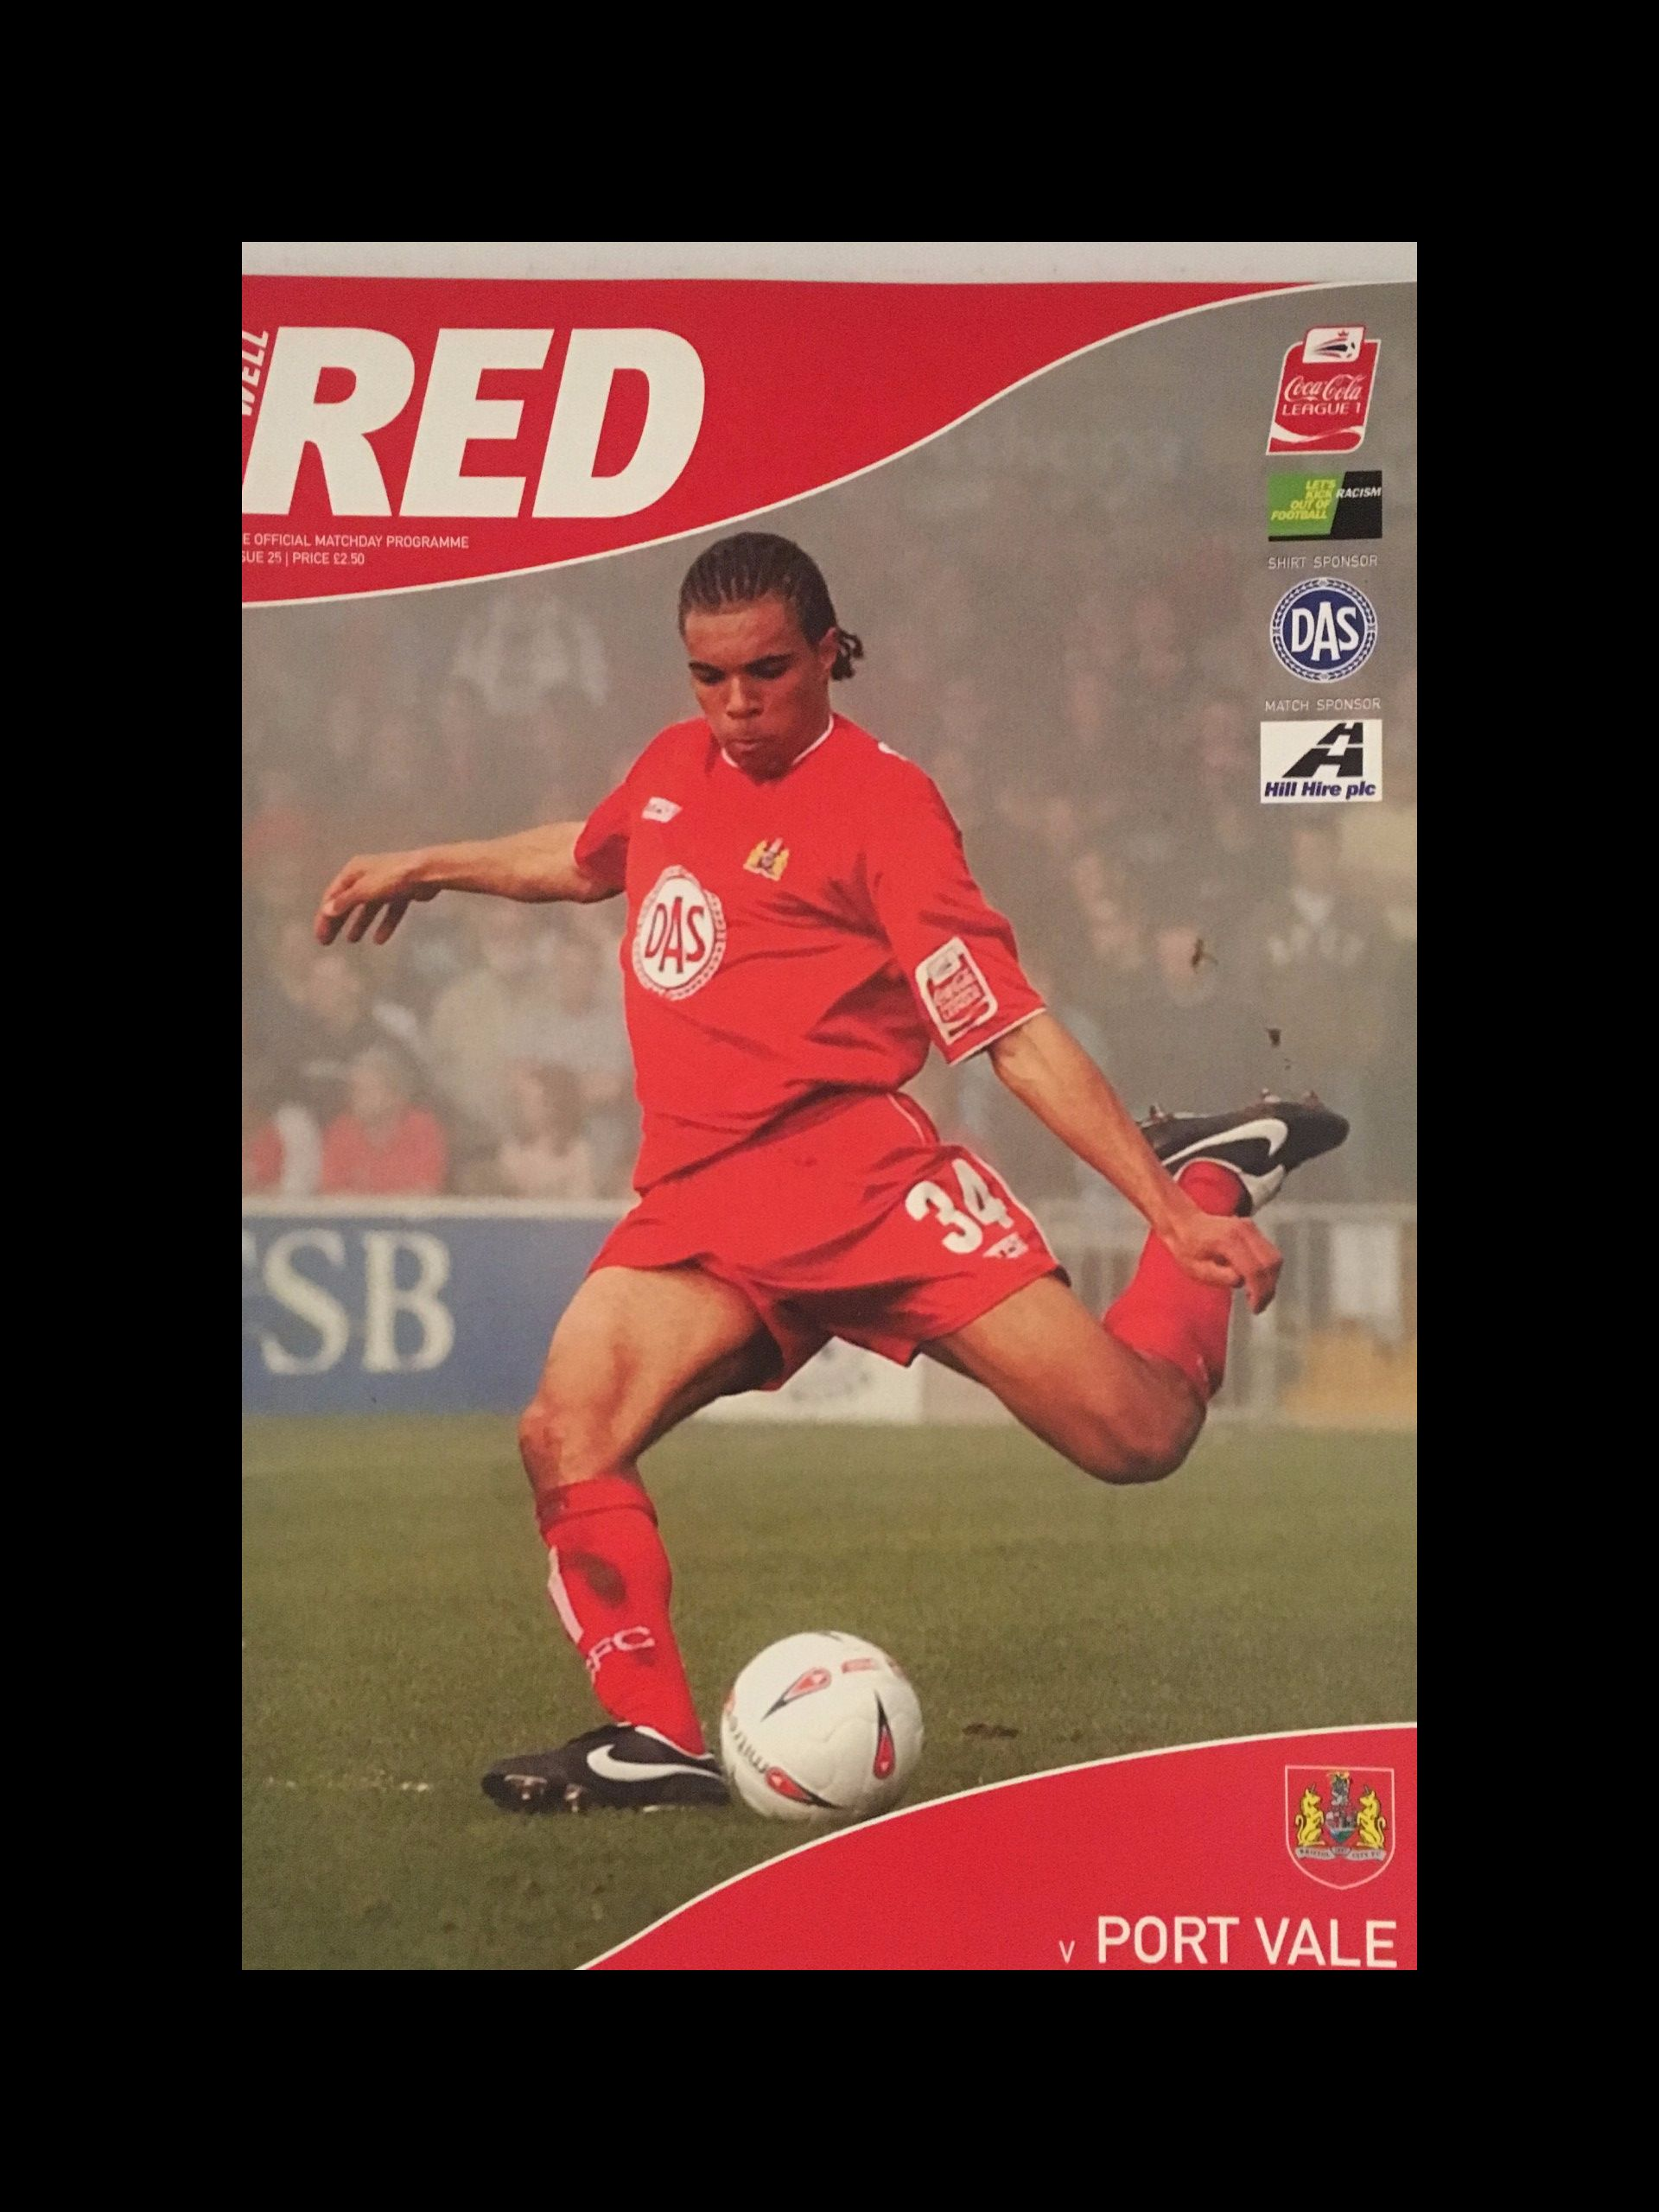 Bristol City v Port Vale 02-04-2005 Programme